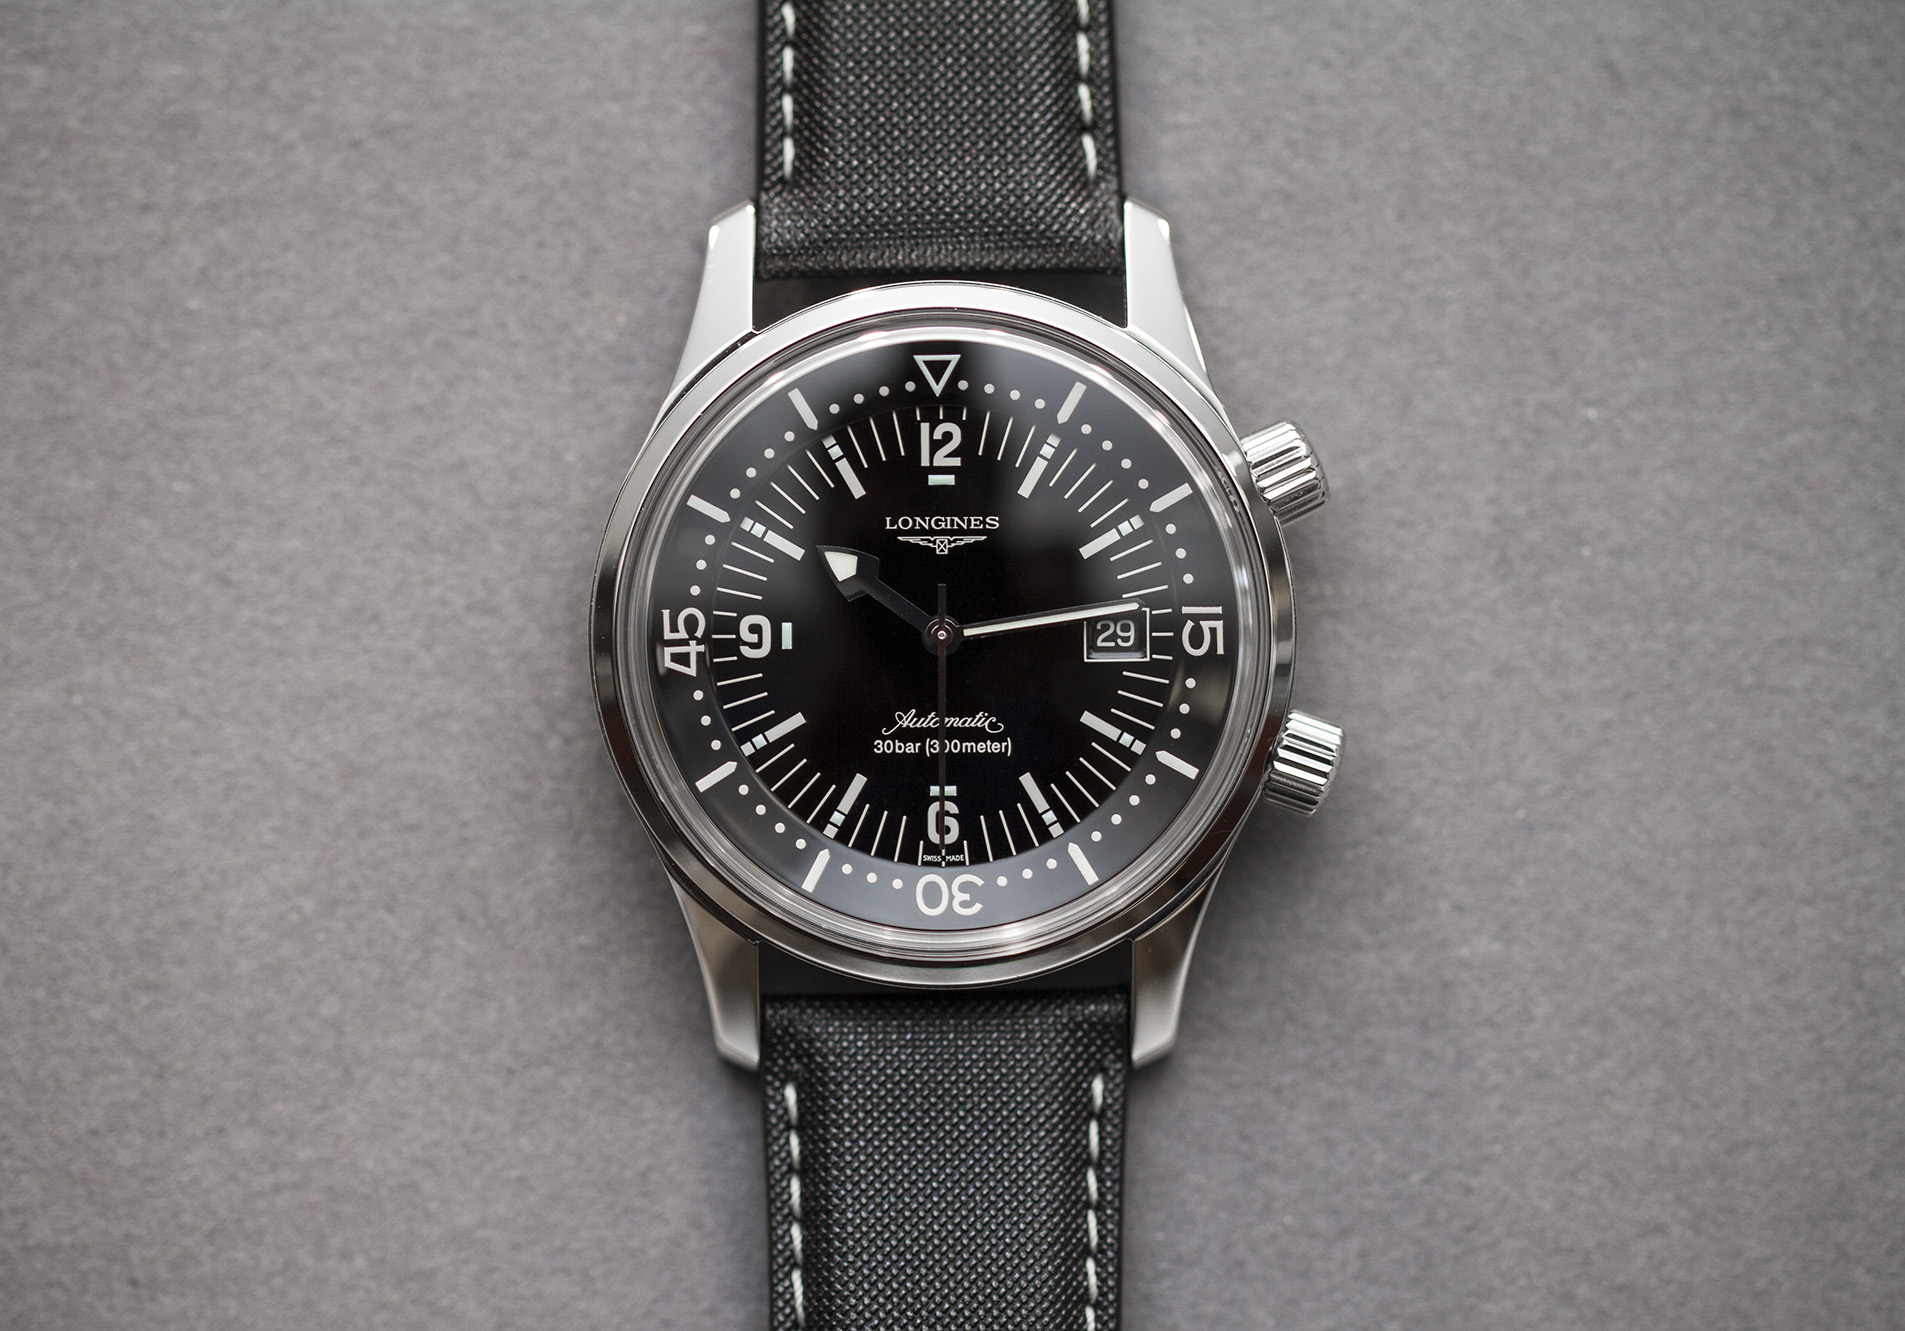 Straight on dial with date